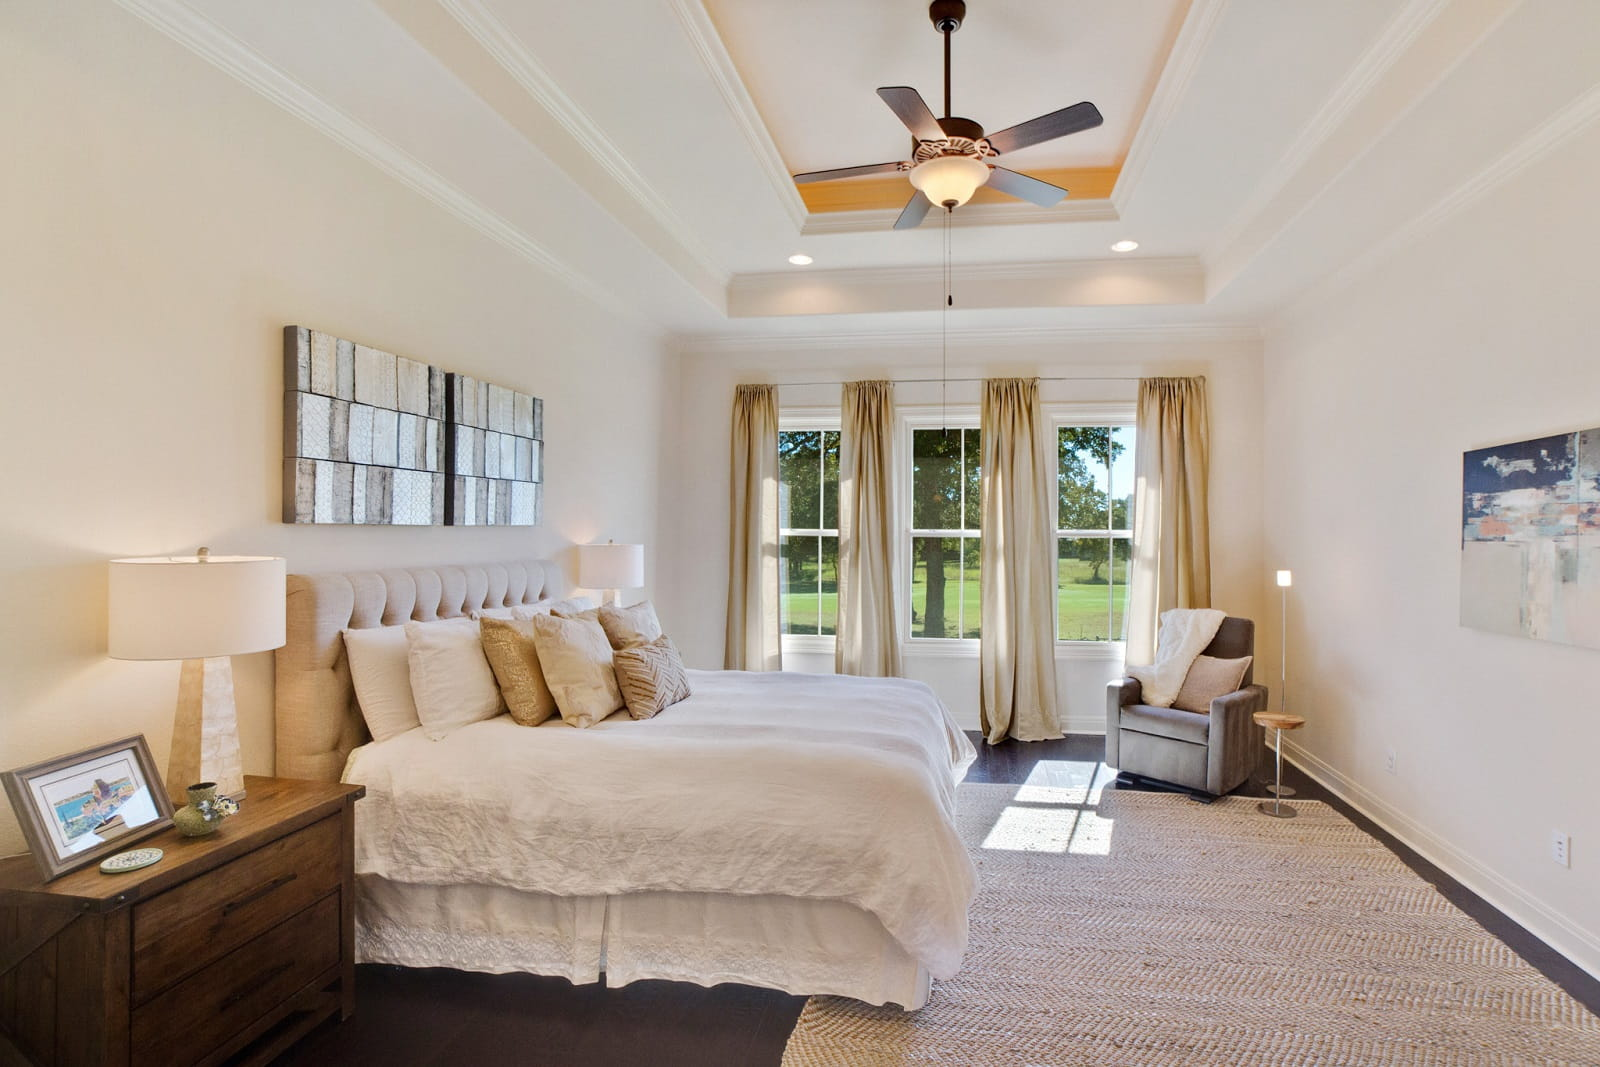 Real Estate Photography in Georgetown - TX - Bedroom View